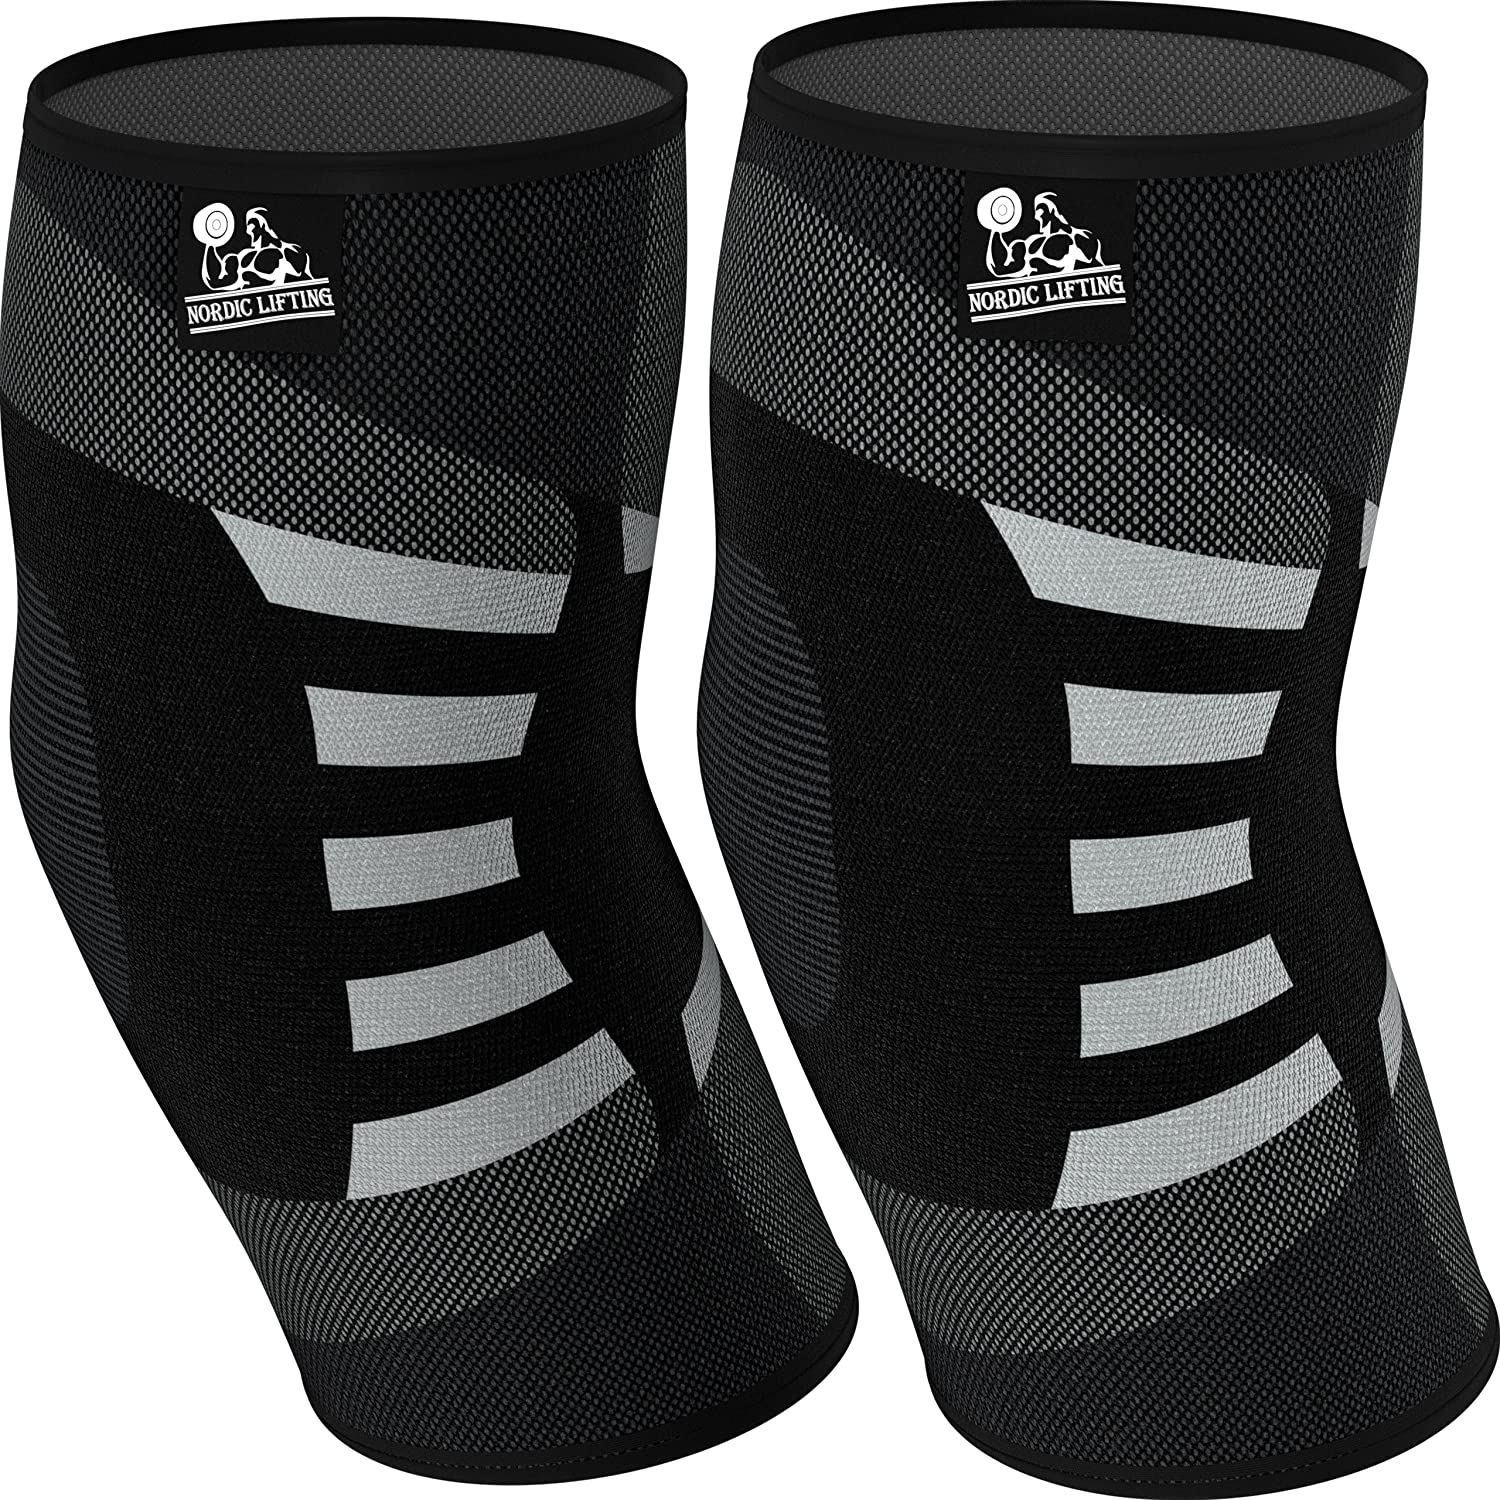 Nordic Lifting - Elbow Compression Sleeves